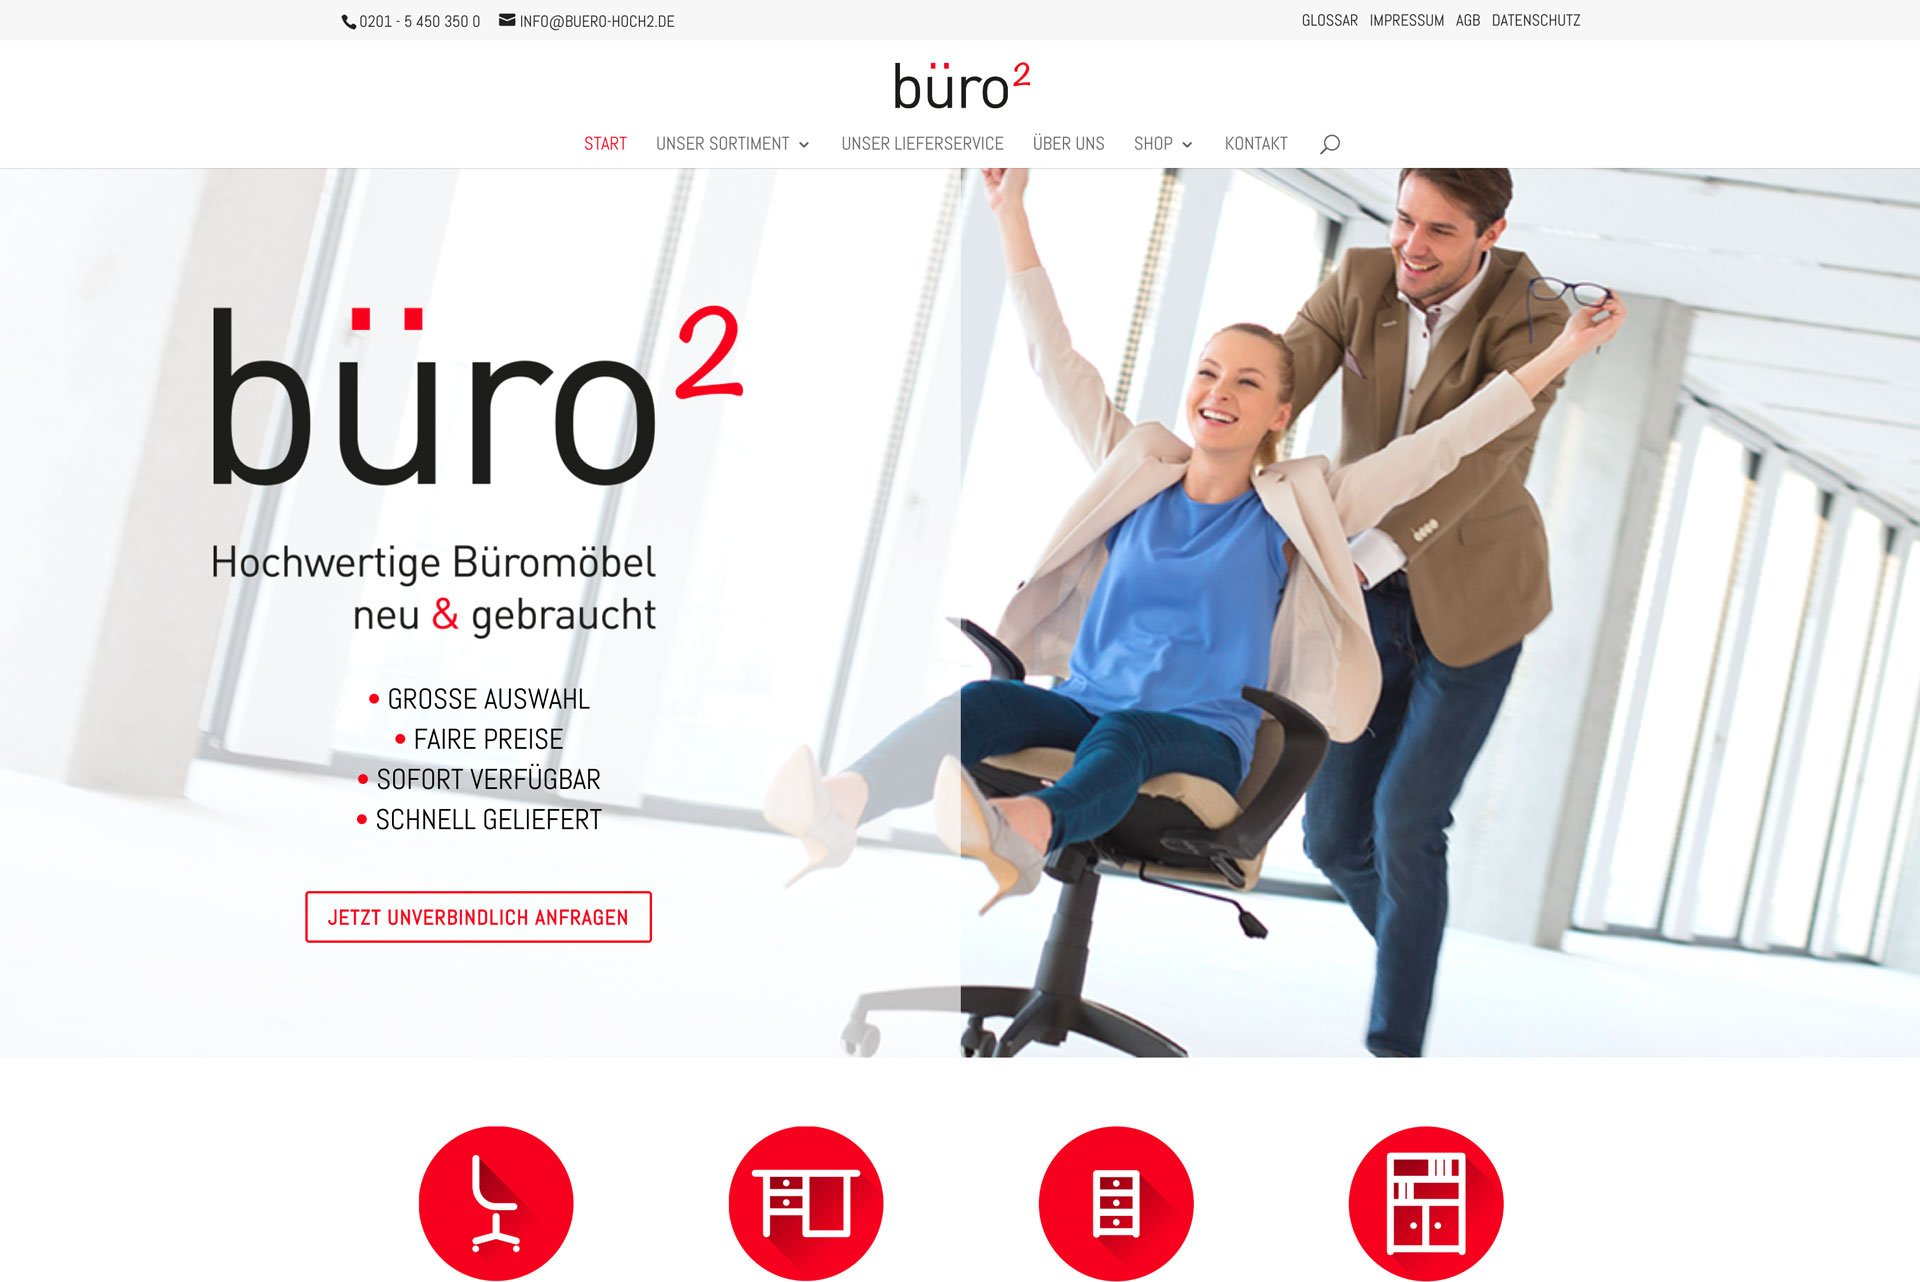 webdesign werbeagentur digitallotsen-buero-hoch2-bueromoebel-webdesign-wordpress-woocommerce-01